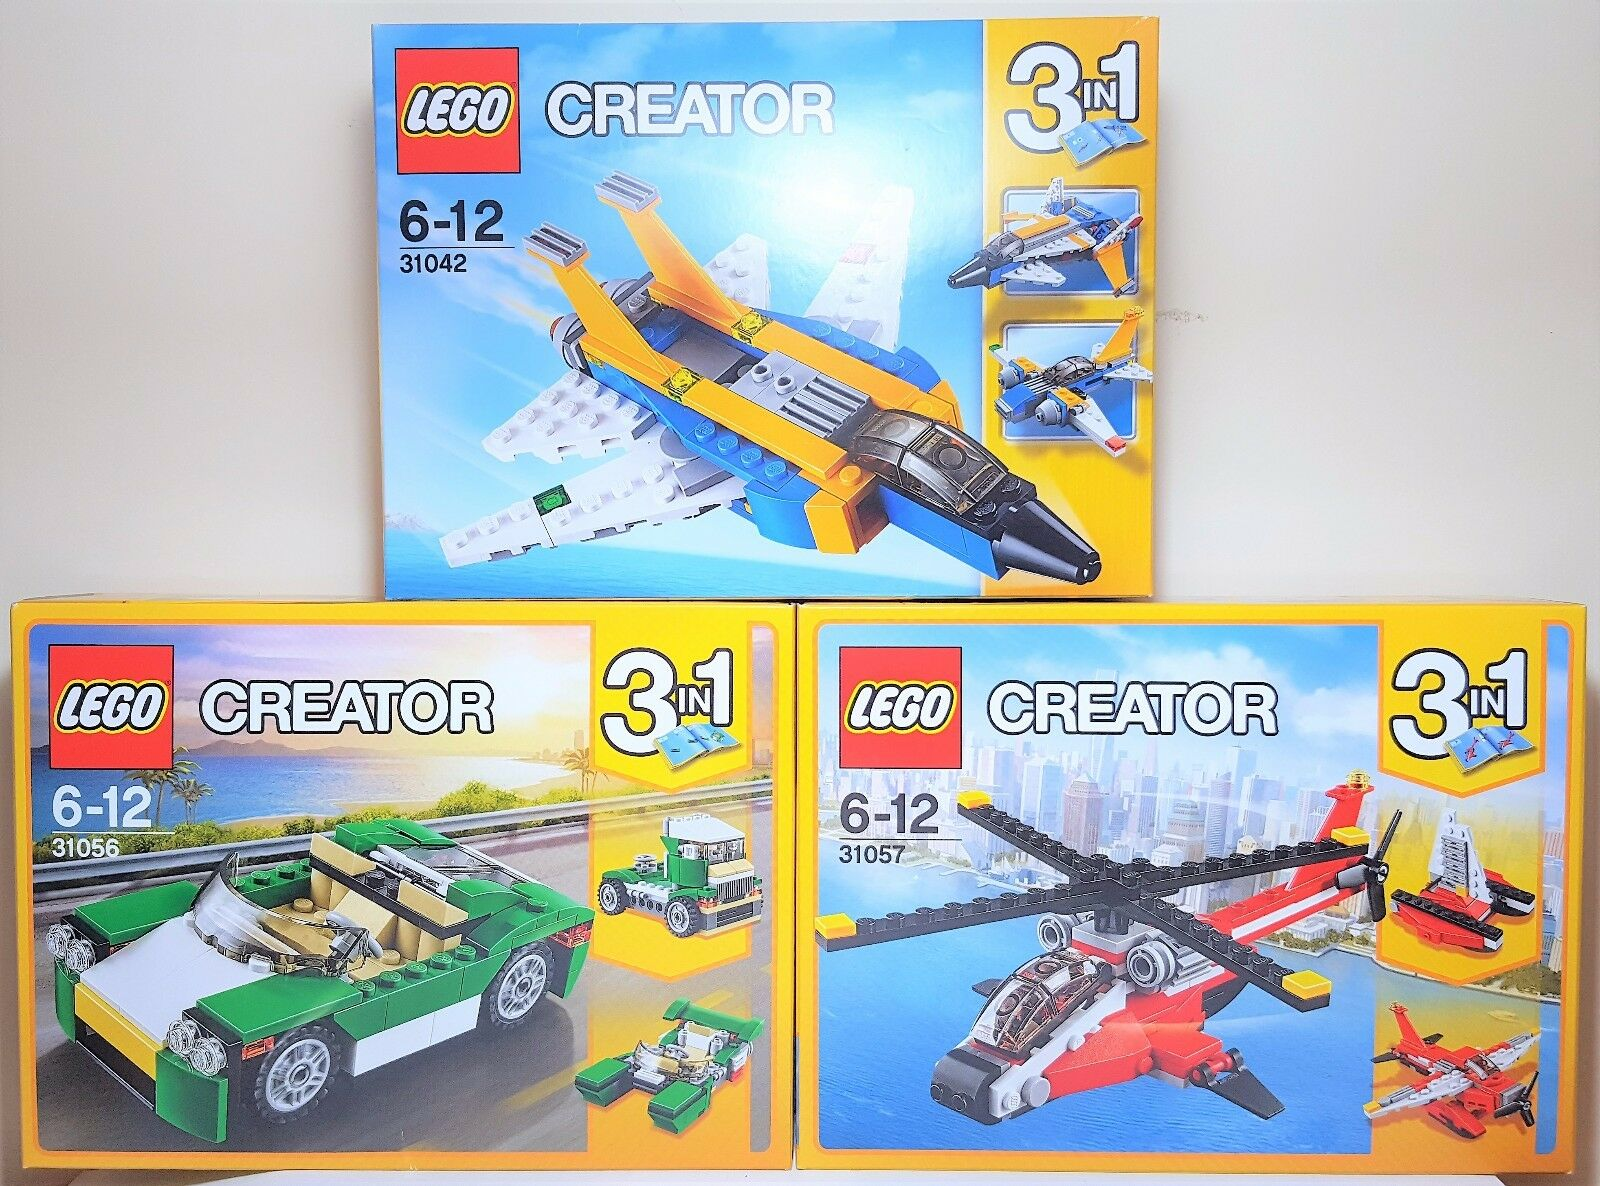 Lego 3 in 1 Lot of 3 Creator Set 31056 31057 31042 Brand New